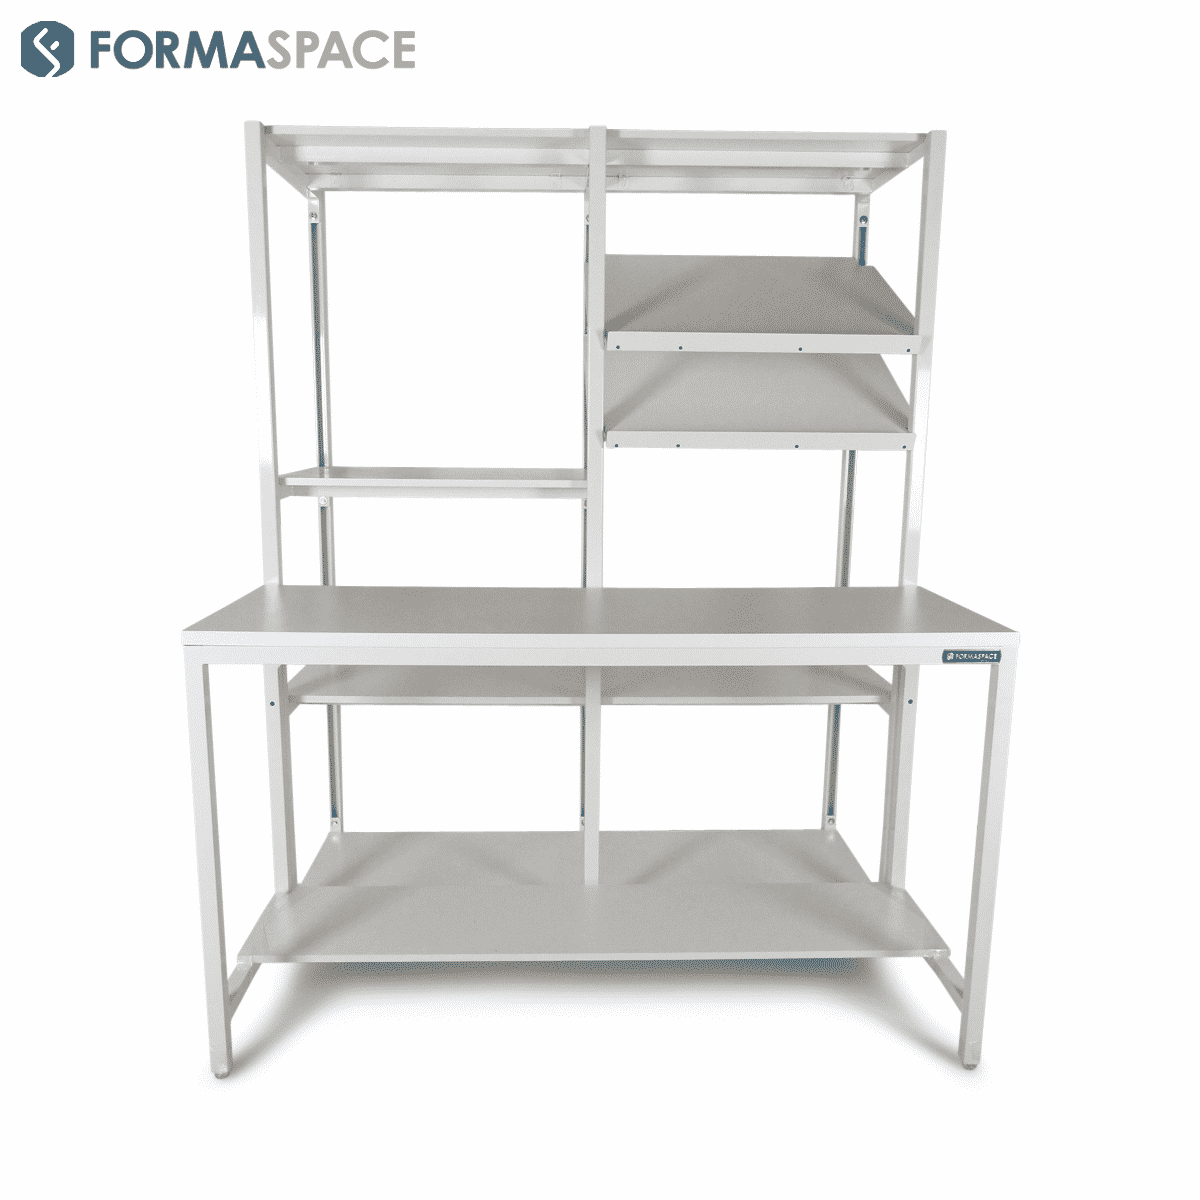 workstation paired with packaging shelves